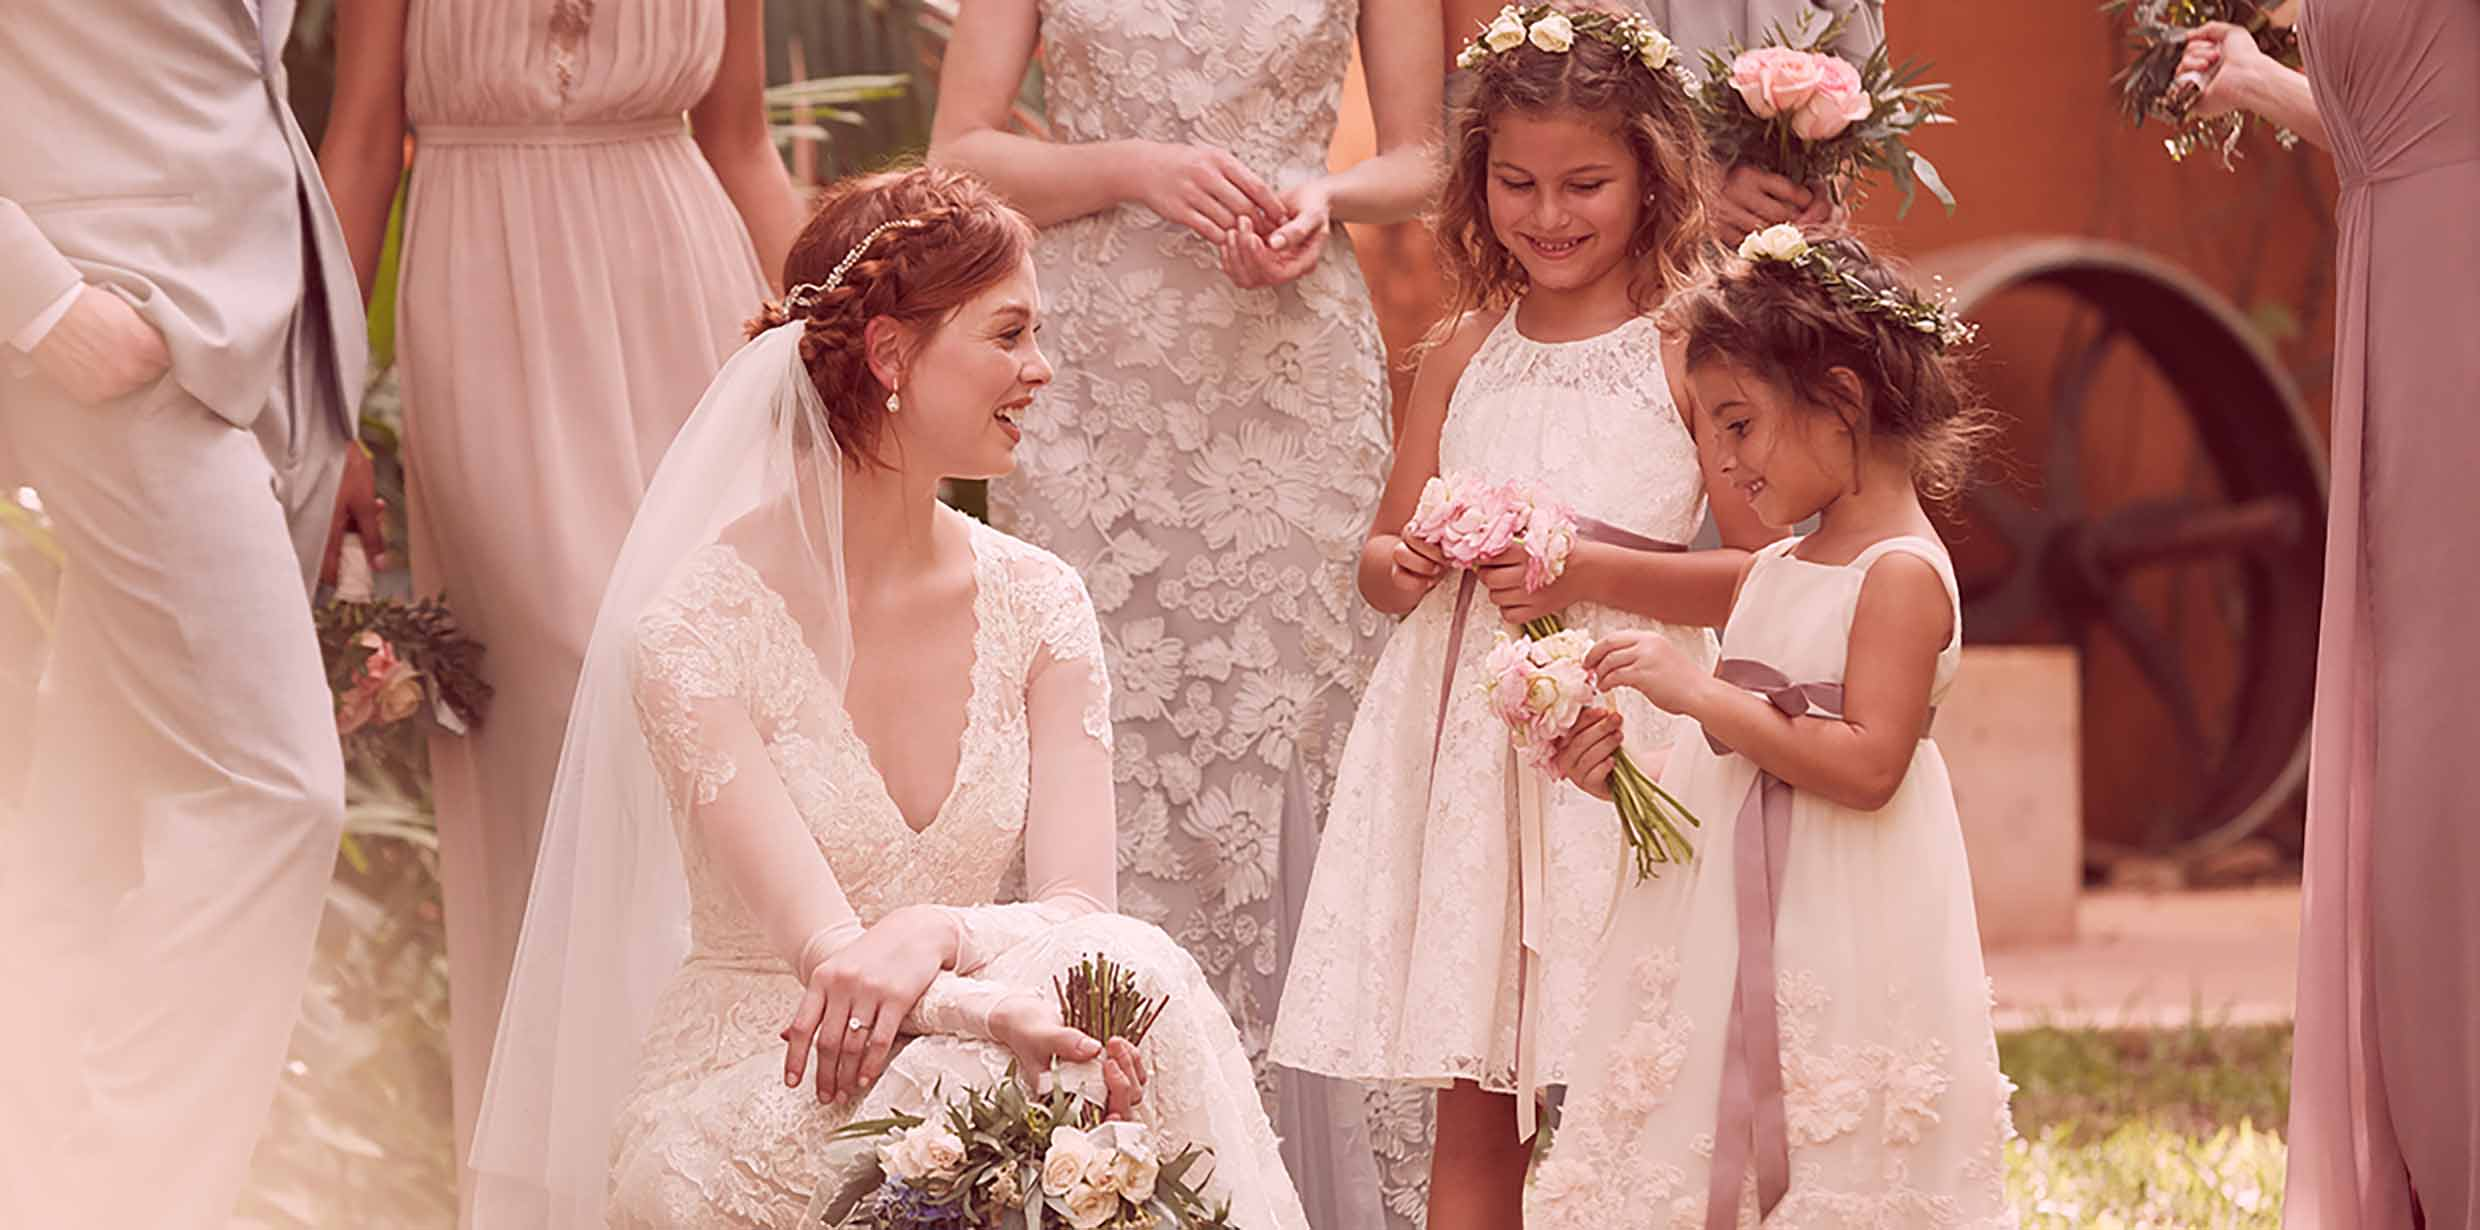 Bride kneeling down and smiling at flower girls